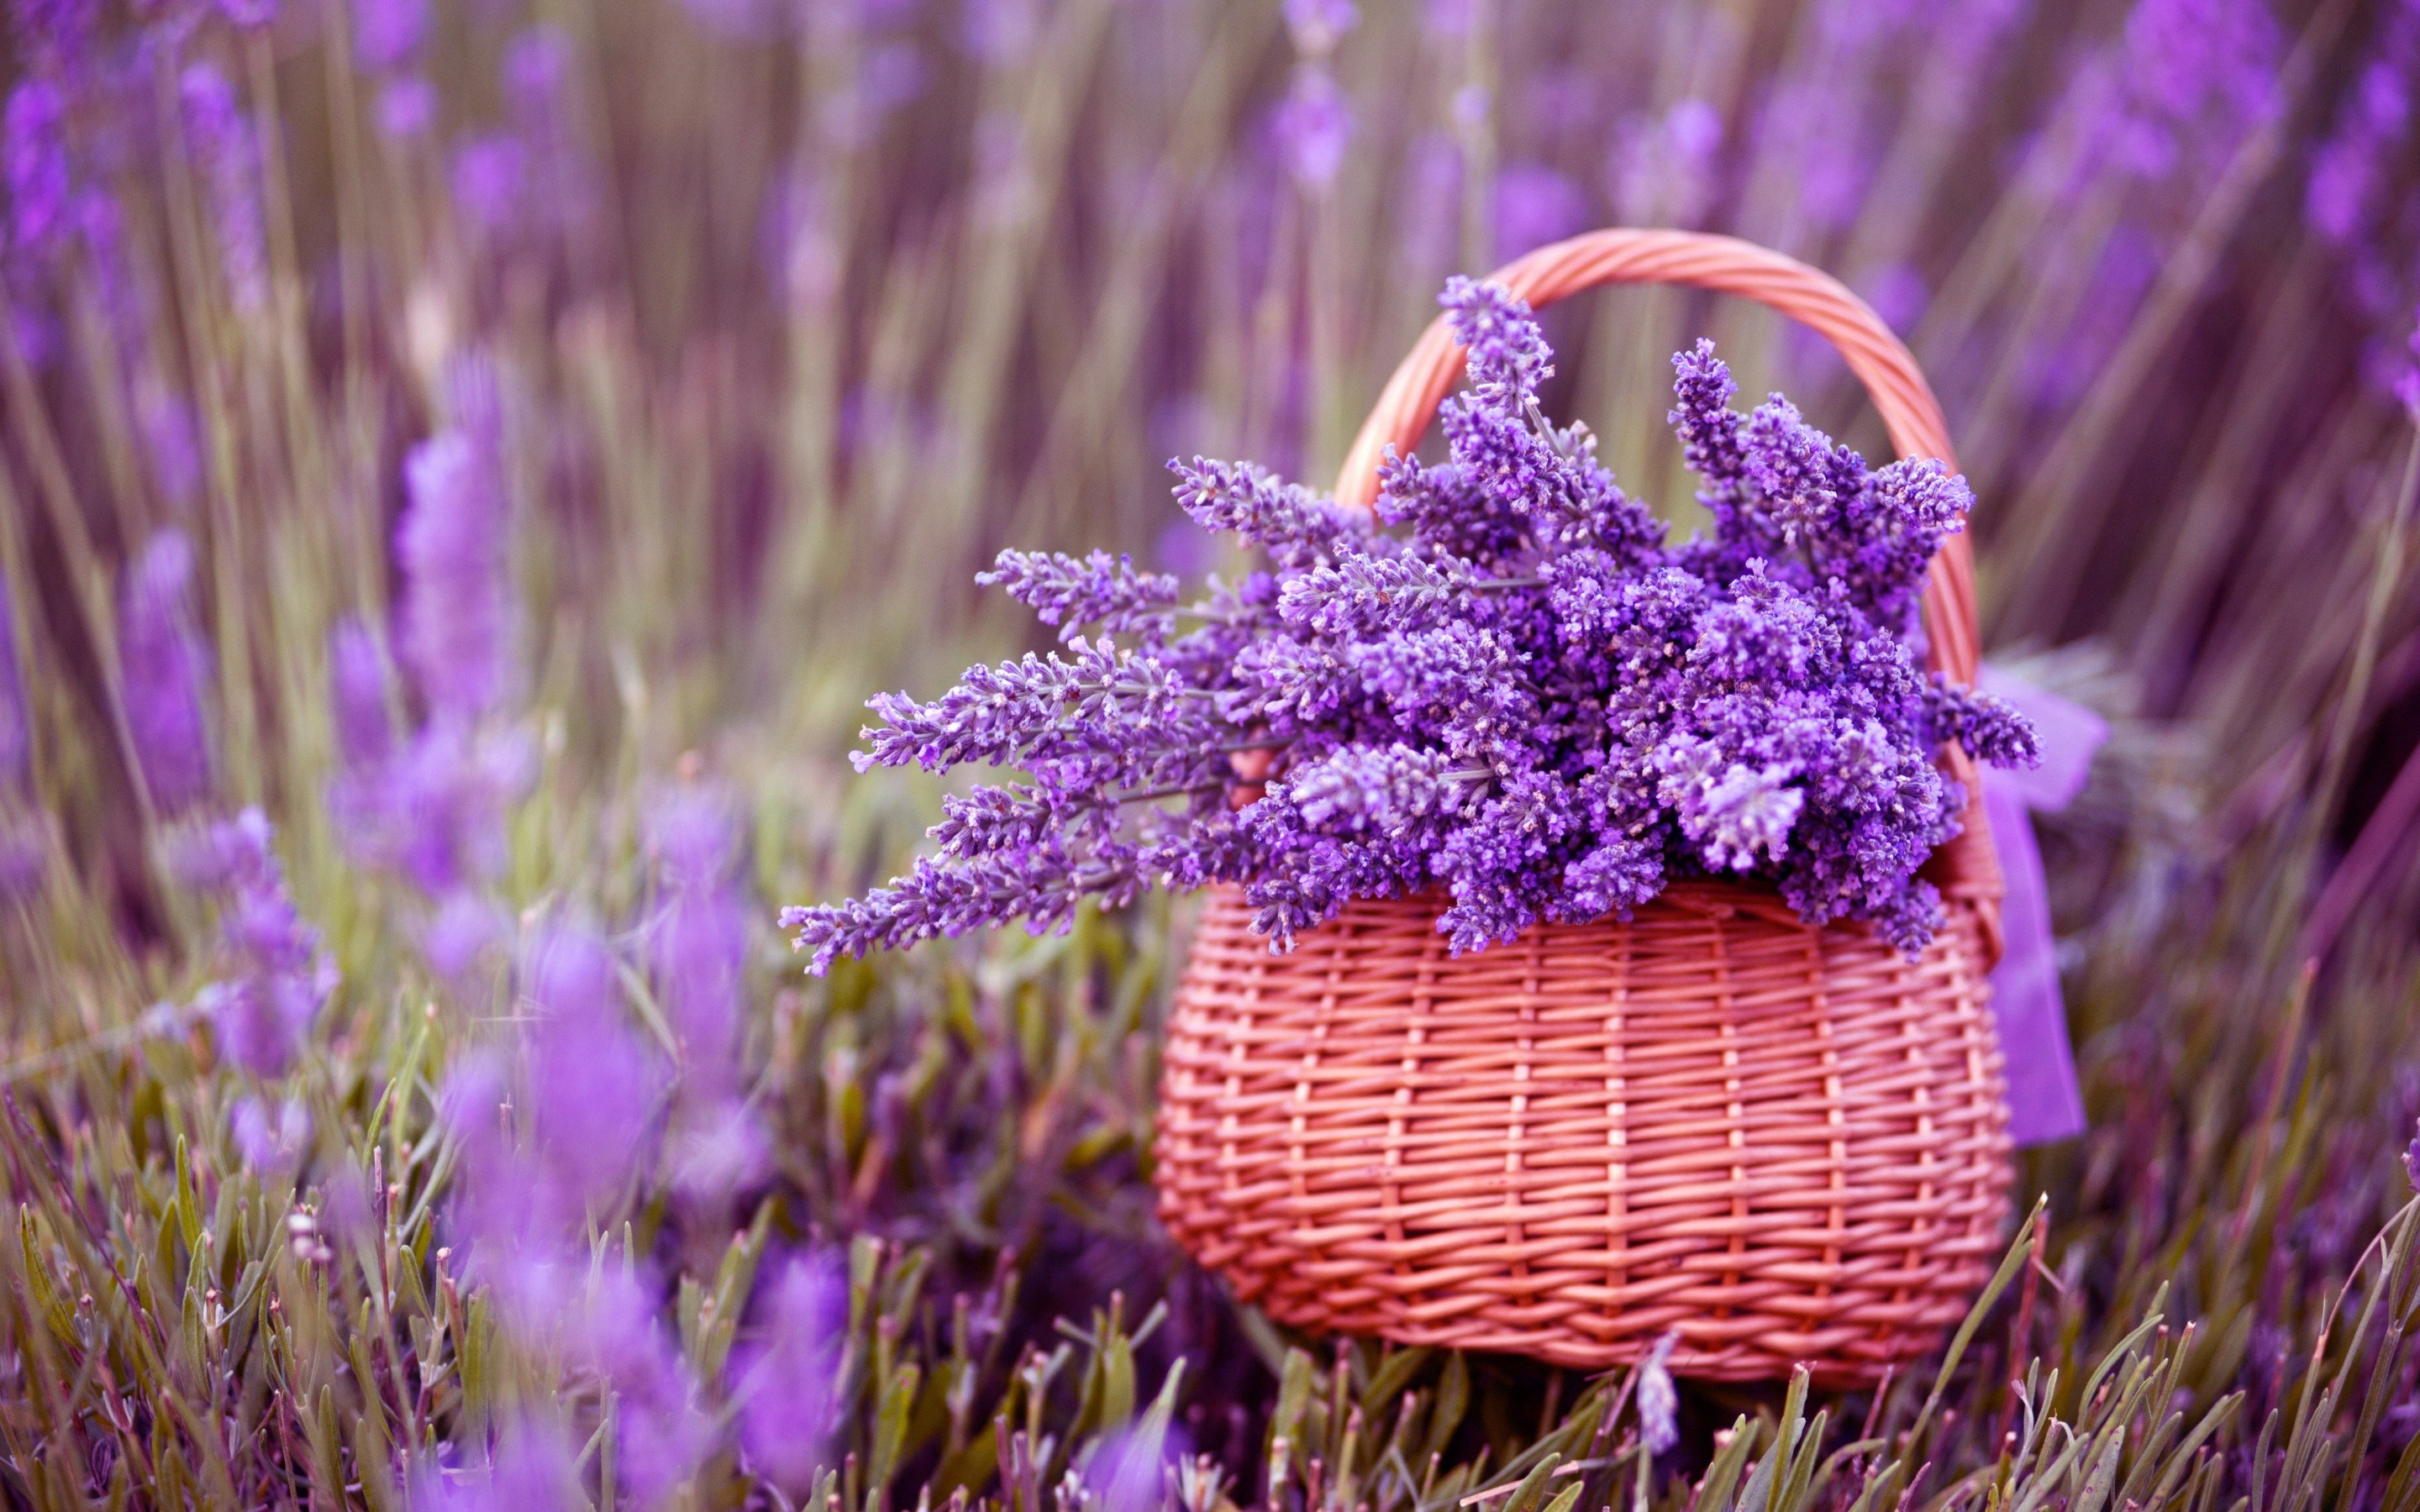 Lovely Purple Macro Wallpaper 37995 2880x1800 px